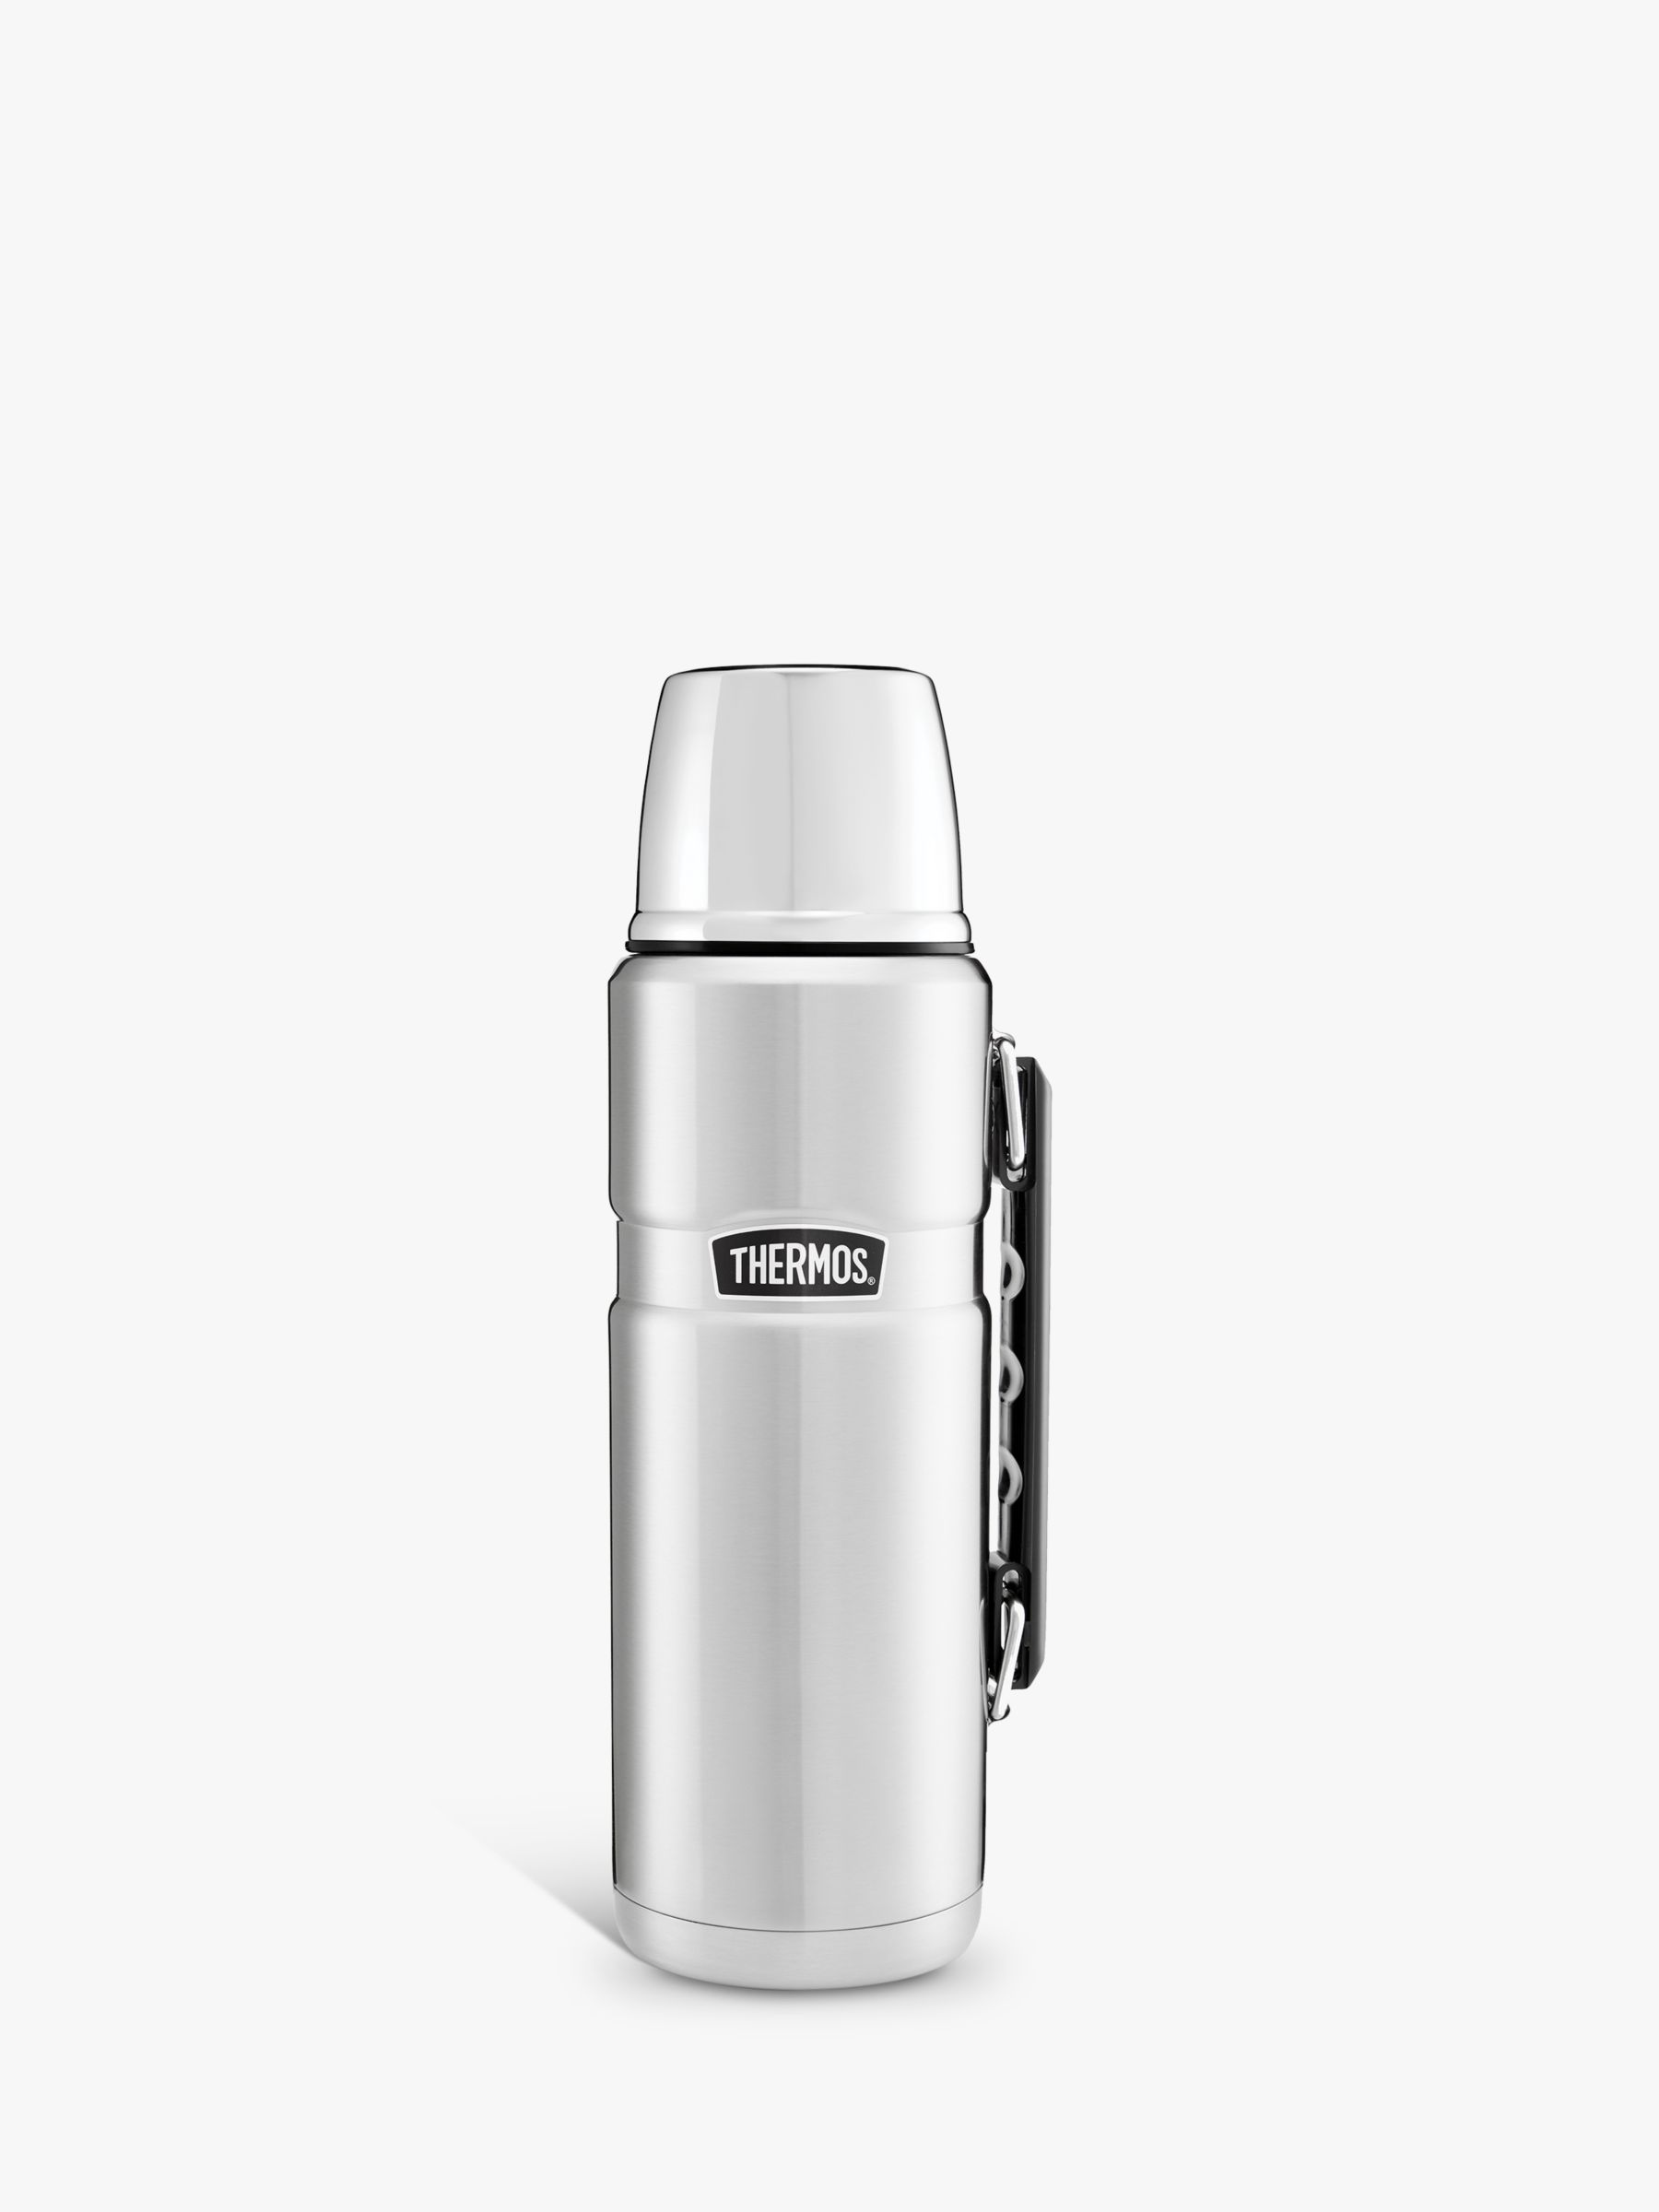 Thermos Thermos King Flask, Stainless Steel, 1.2L